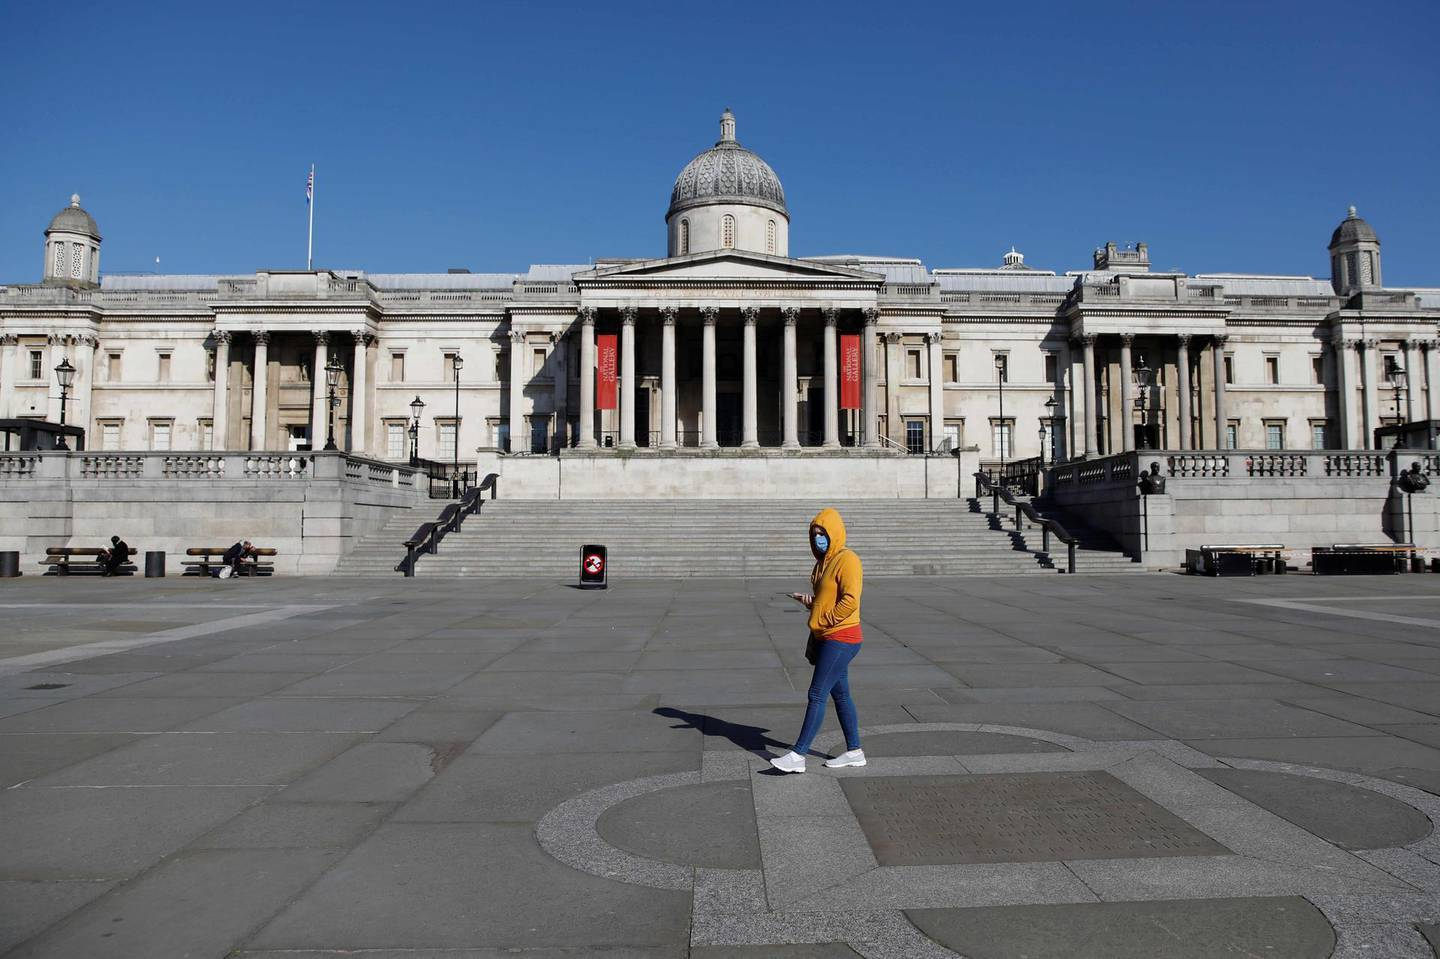 """A masked visitor walks past the National Gallery in a near deserted Trafalgar Square in central London on March 25, 2020, after Britain's government ordered a lockdown to slow the spread of the novel coronavirus. Britain was under lockdown, its population joining around 1.7 billion people around the globe ordered to stay indoors to curb the """"accelerating"""" spread of the coronavirus. / AFP / Tolga AKMEN"""